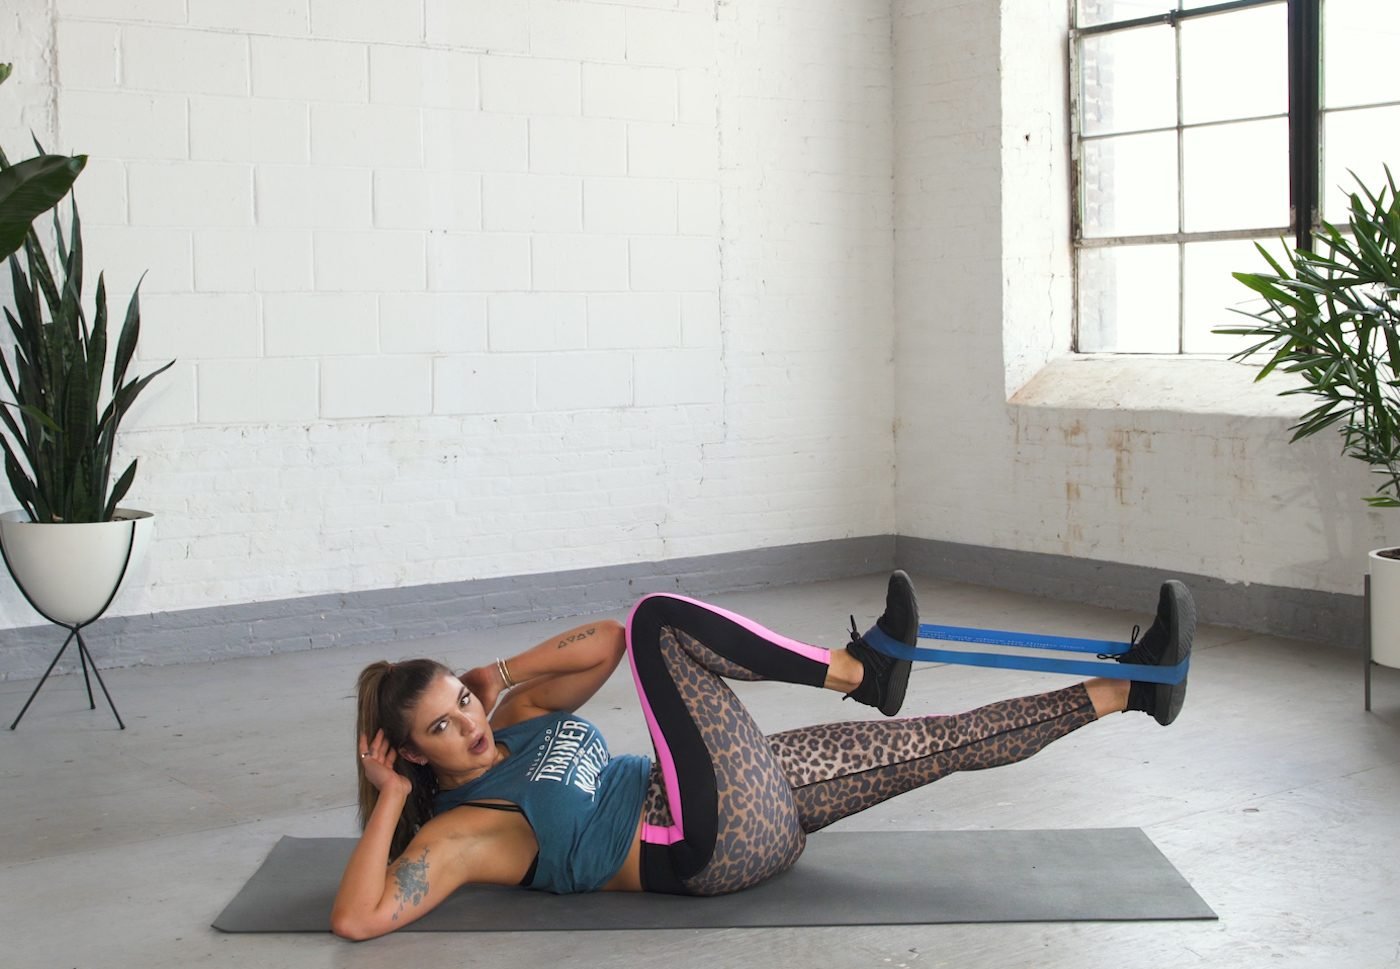 I thought my abs routine was tough until I tried this 6-move resistance band workout